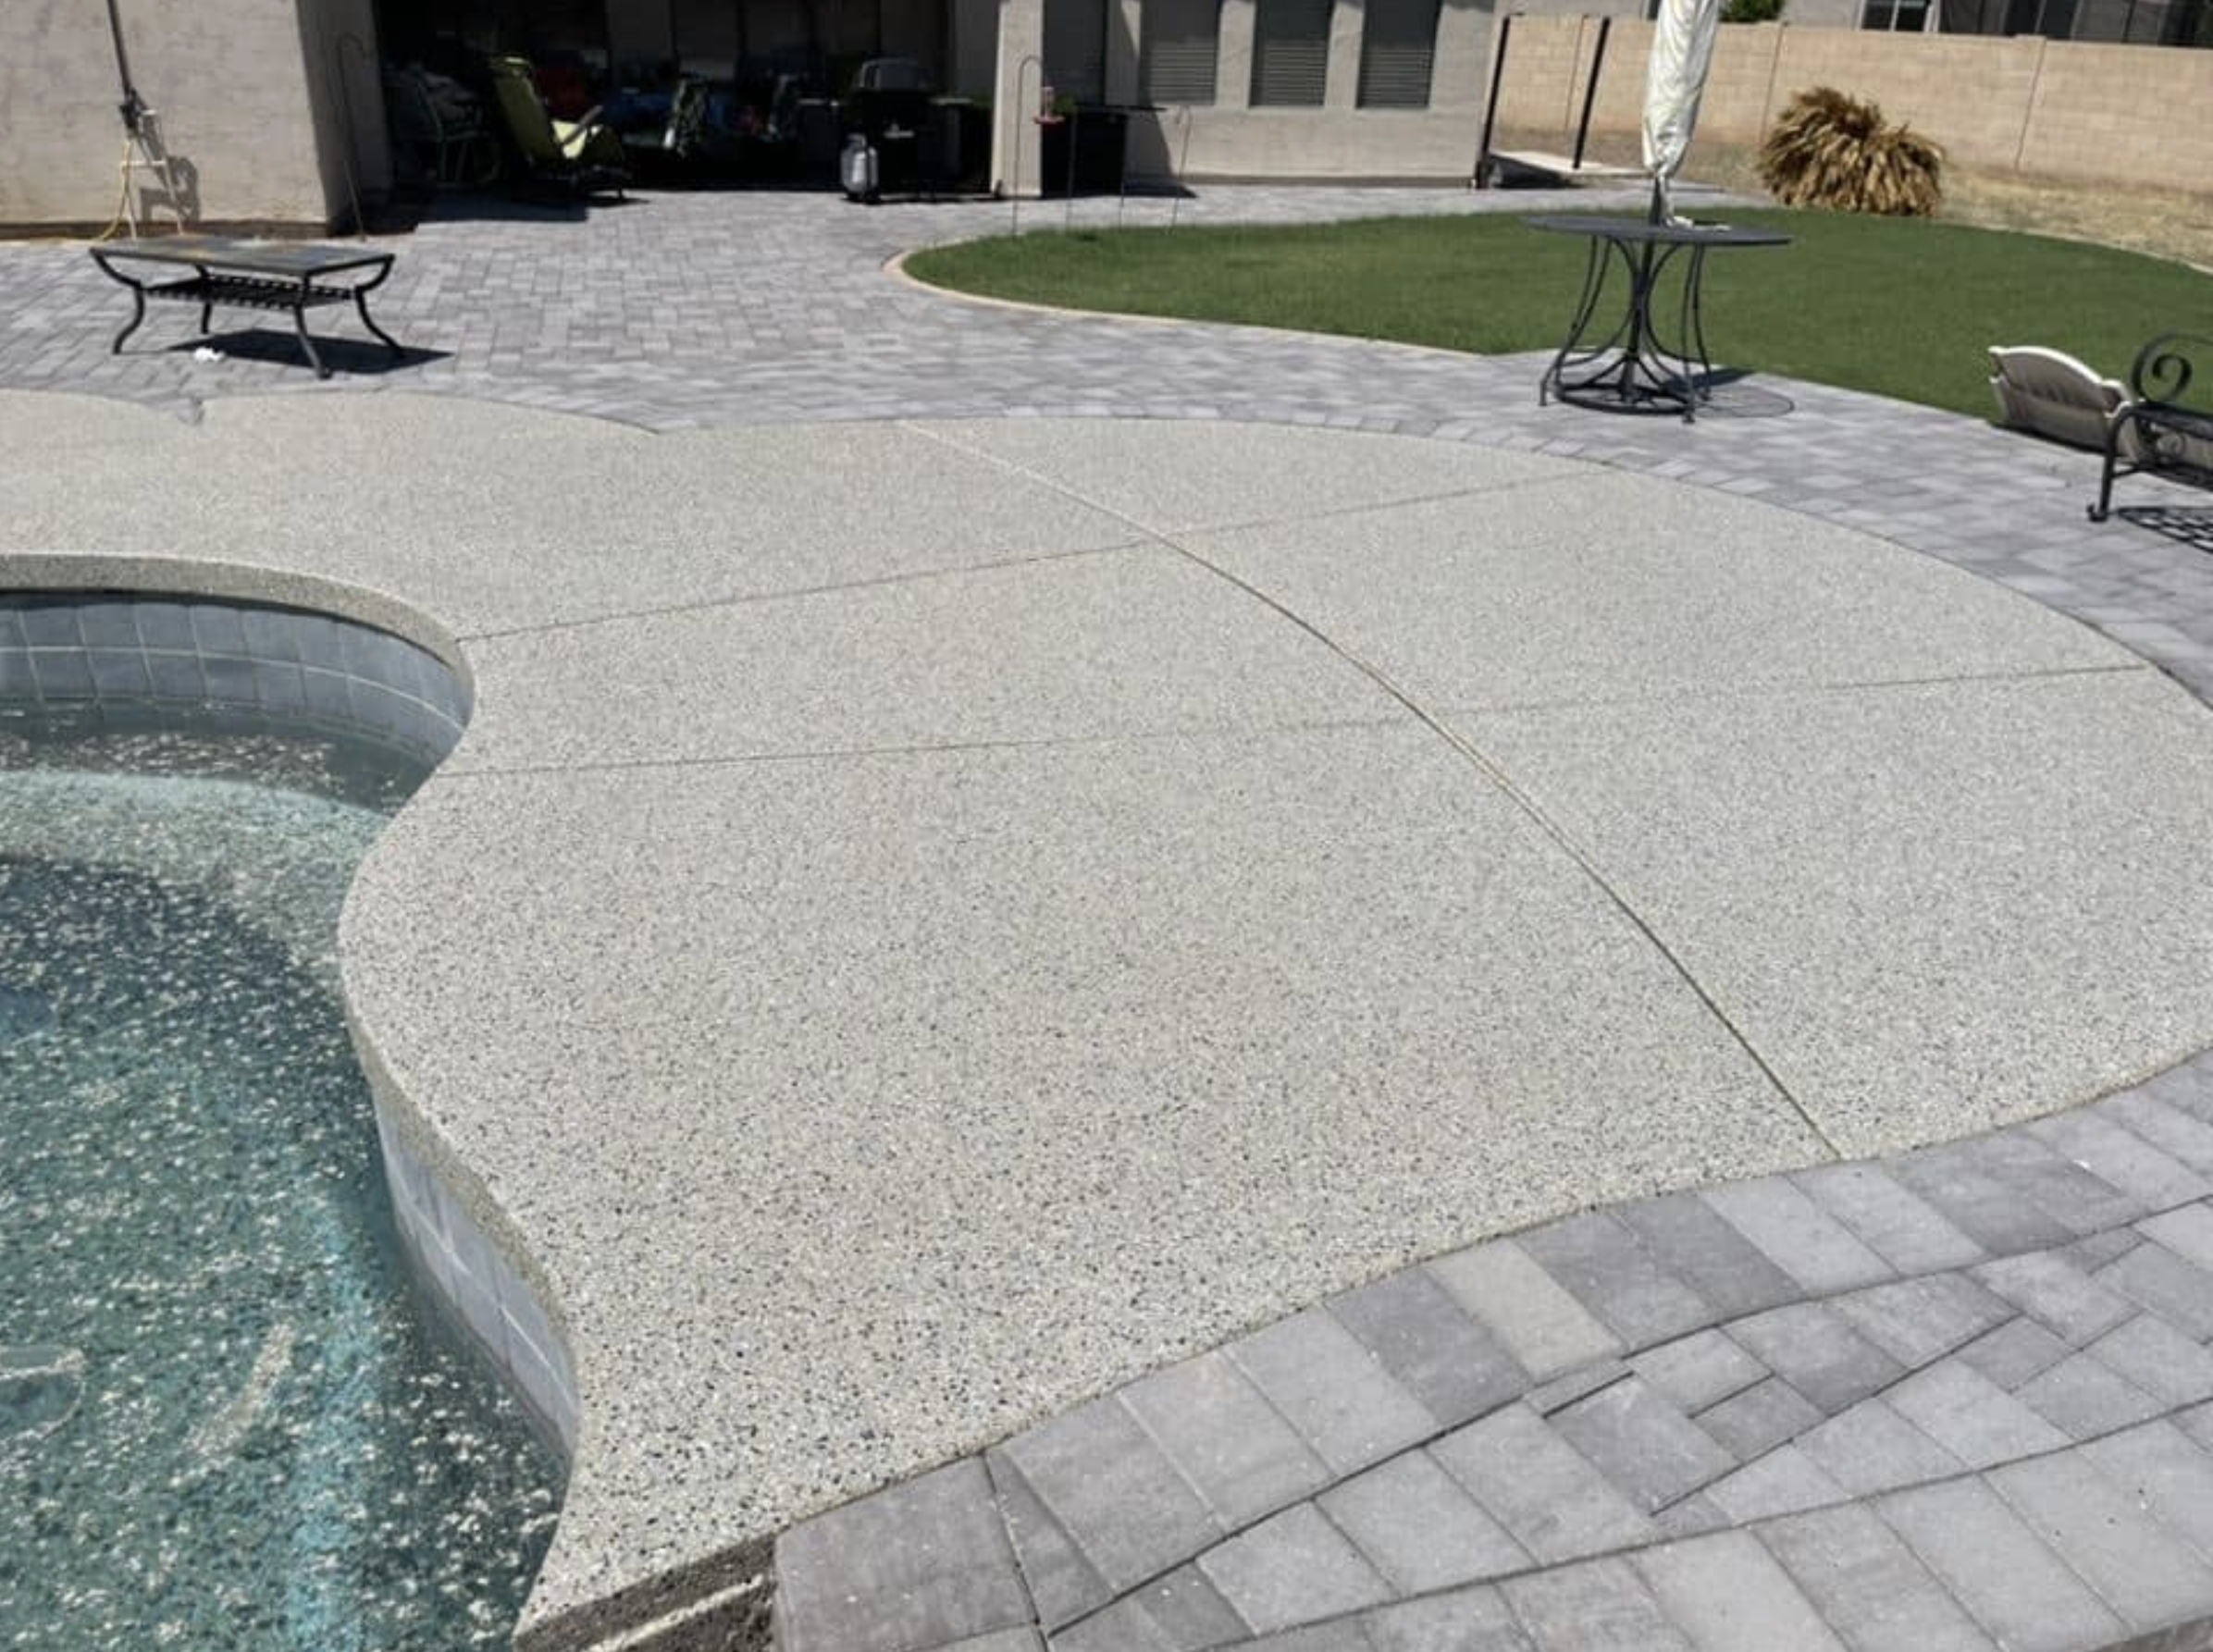 this image shows pool deck in Rancho Cucamonga, California